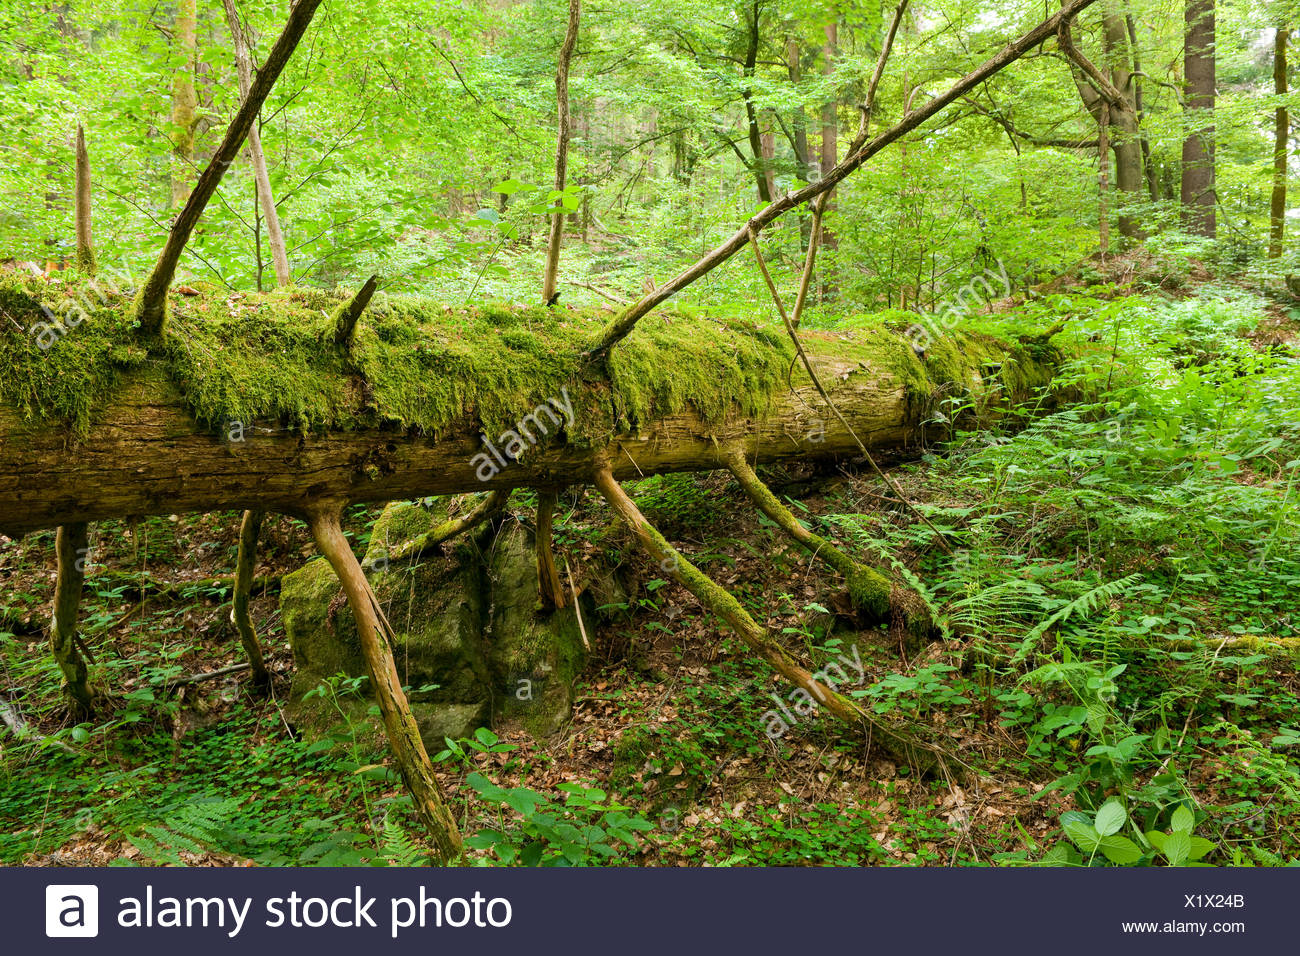 Deadwood, Norway Spruce (Picea abies), Vessertal-Thuringian Forest biosphere reserve, Thuringia, Germany - Stock Image